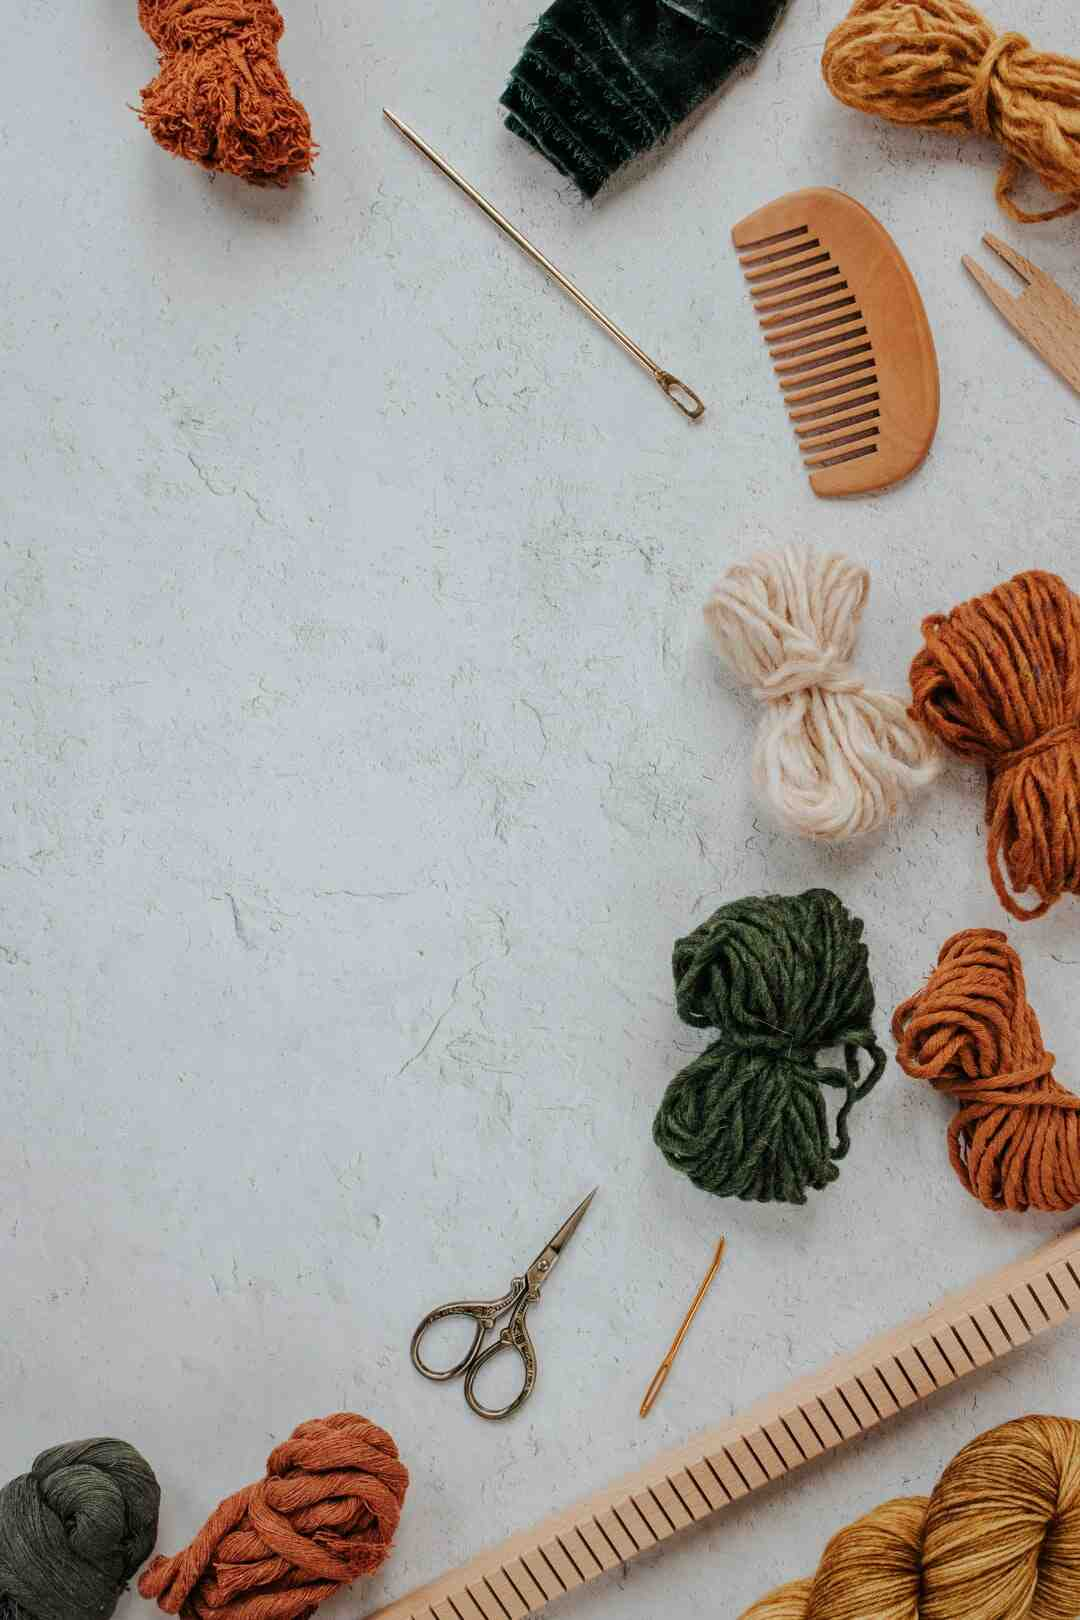 Why do crochet rugs curl?